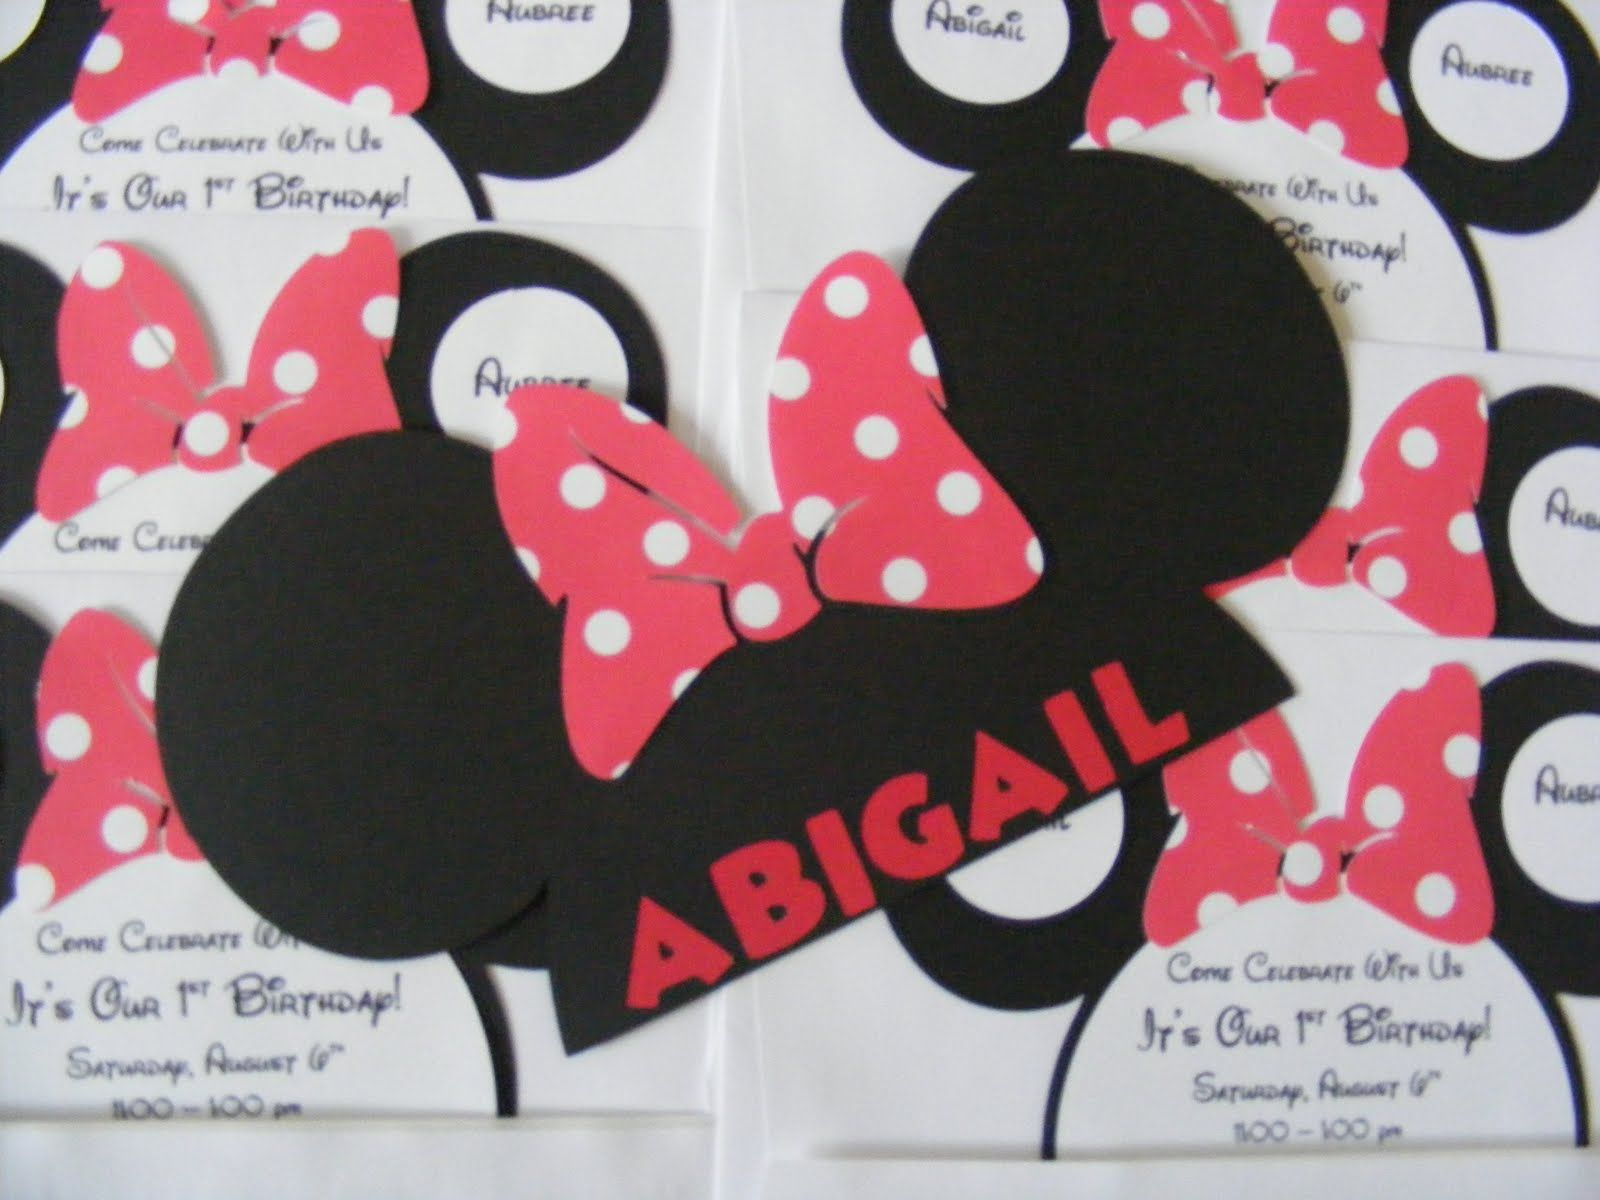 First birthday party ideas baby minnie mouse creations by ann whimsical creations by ann minnie mouse party ideas decorations invitations solutioingenieria Choice Image